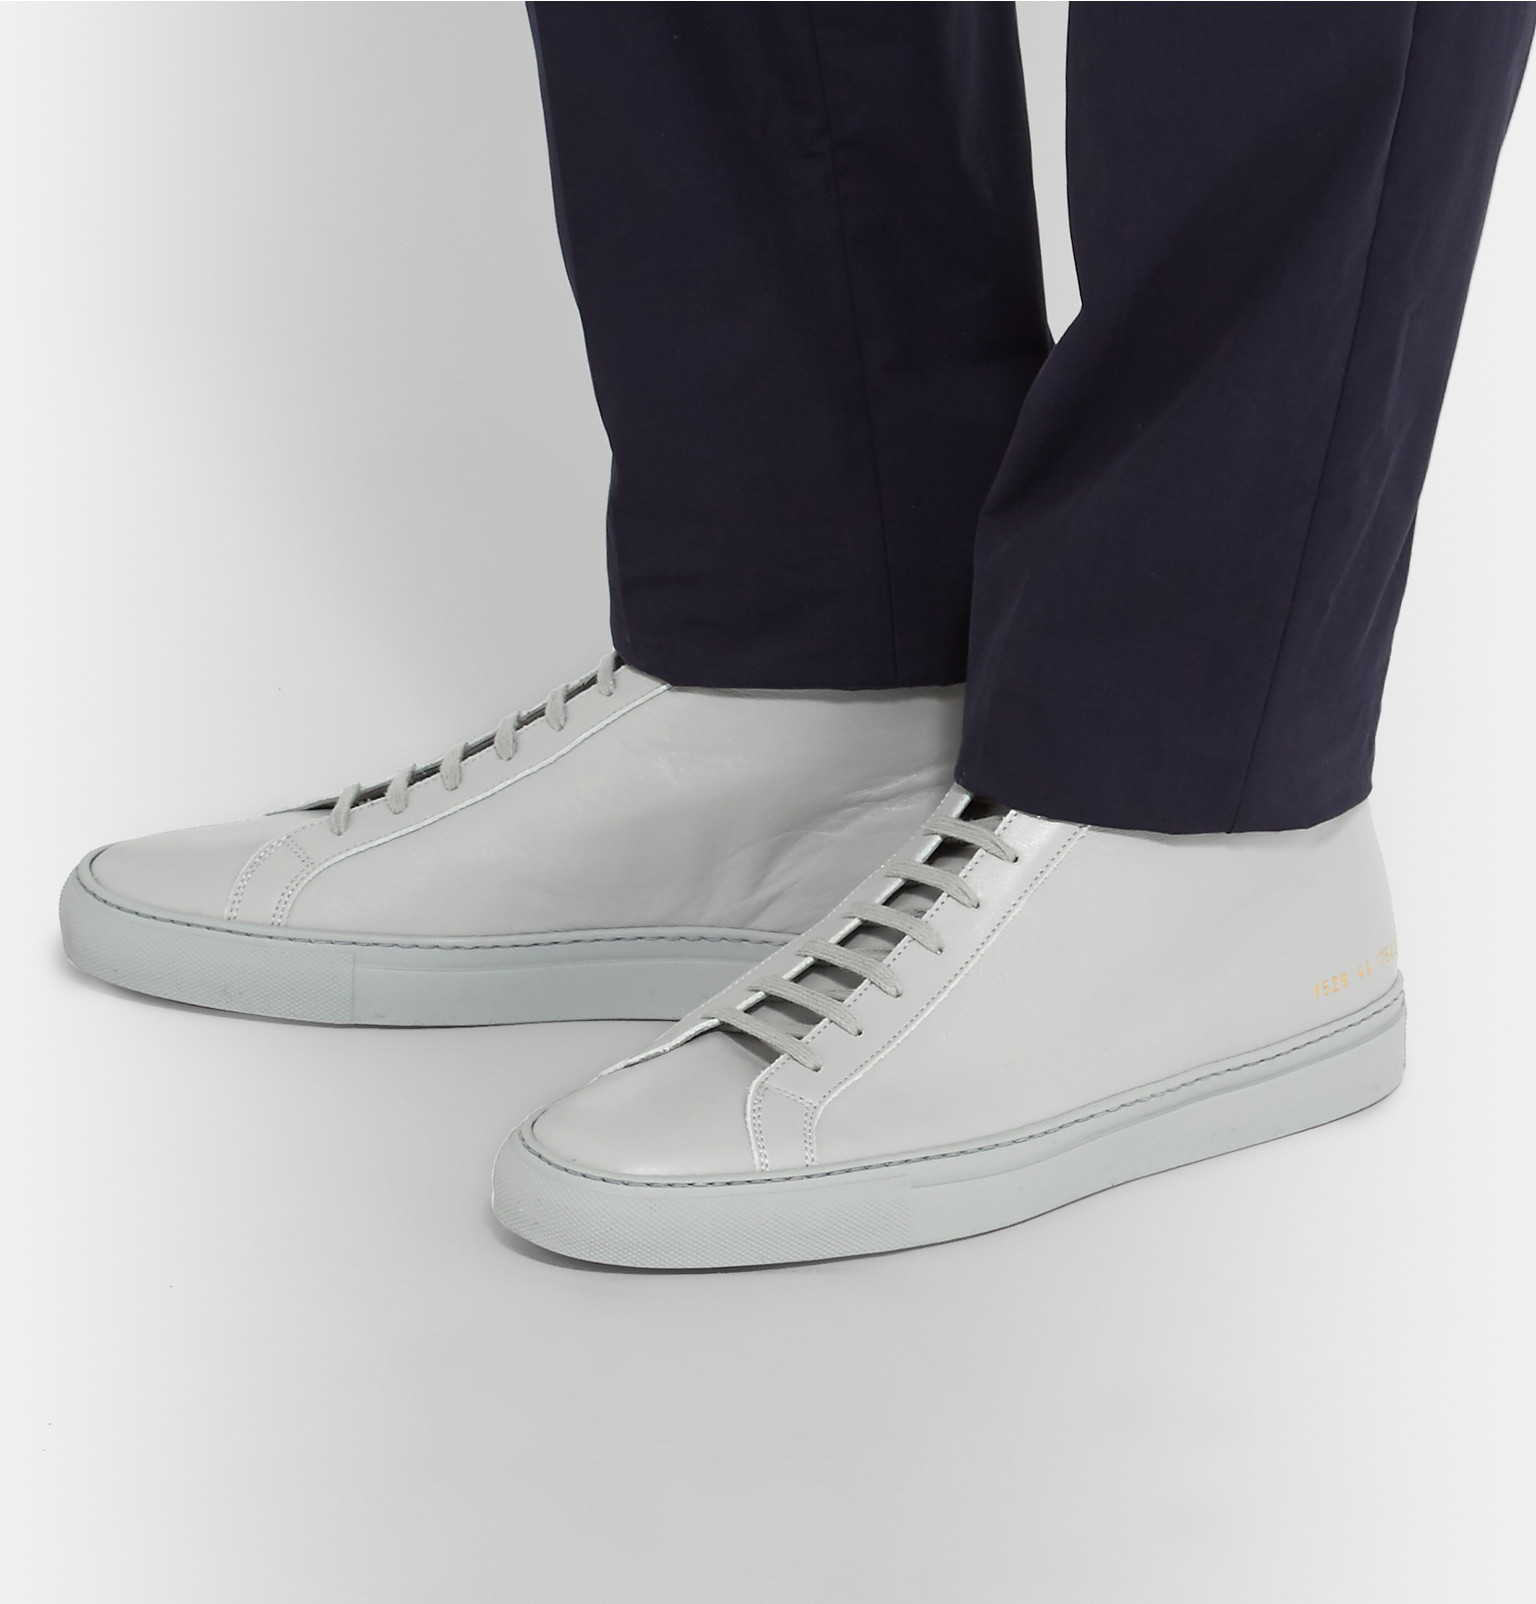 84775d54ec1 Common Projects - Original Achilles Leather High-Top Sneakers